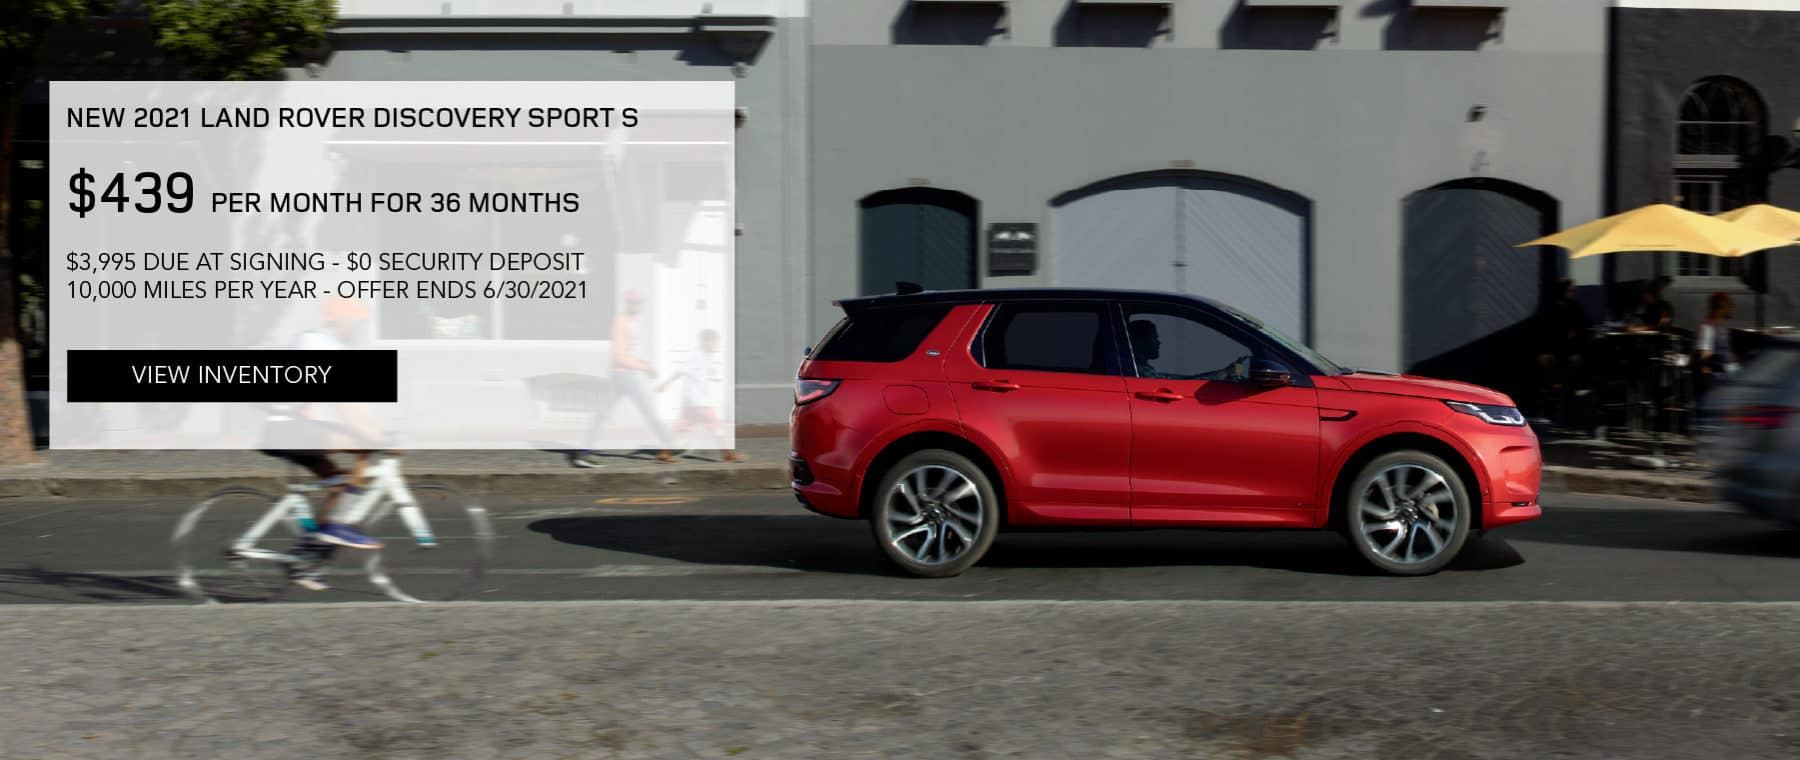 NEW 2021 LAND ROVER DISCOVERY SPORT S. $439 PER MONTH. 36 MONTH LEASE TERM. $3,995 CASH DUE AT SIGNING. $0 SECURITY DEPOSIT. 10,000 MILES PER YEAR. EXCLUDES RETAILER FEES, TAXES, TITLE AND REGISTRATION FEES, PROCESSING FEE AND ANY EMISSION TESTING CHARGE. ENDS 6/30/2021. VIEW INVENTORY. RED LAND ROVER DISCOVERY SPORT DRIVING THROUGH CITY.